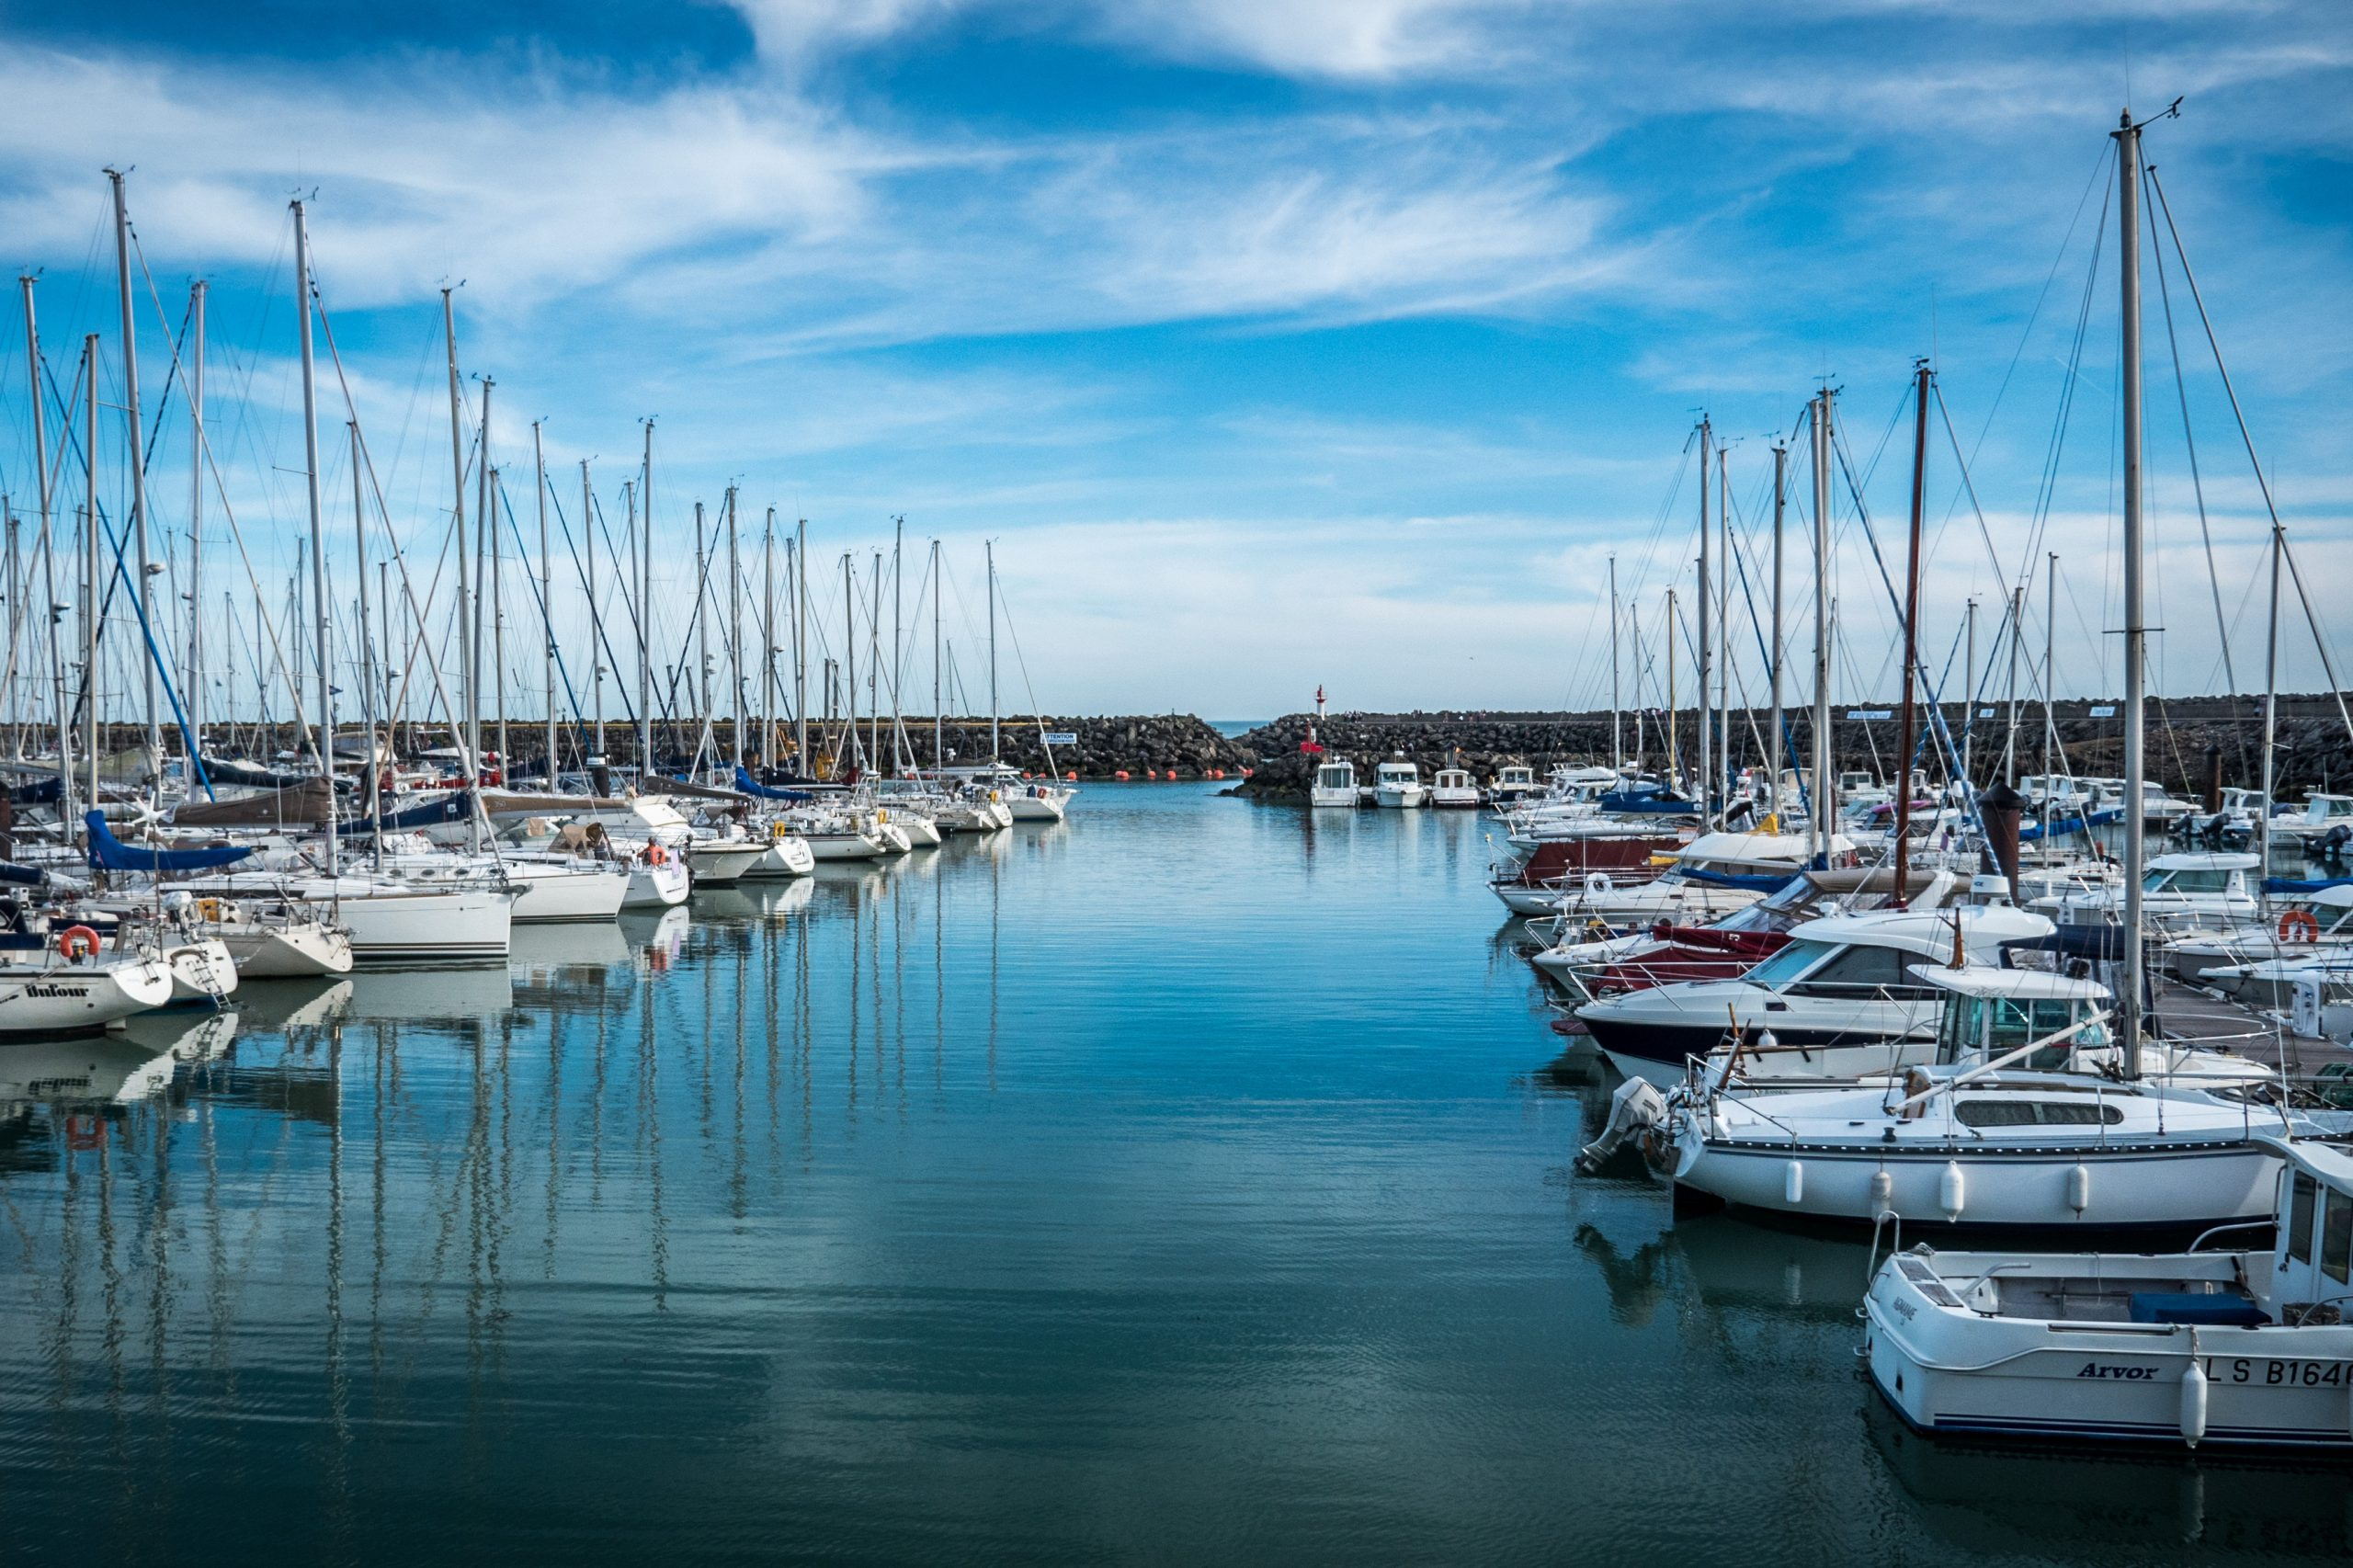 Algorithms to achieve sustainable growth in the leisure marine sector